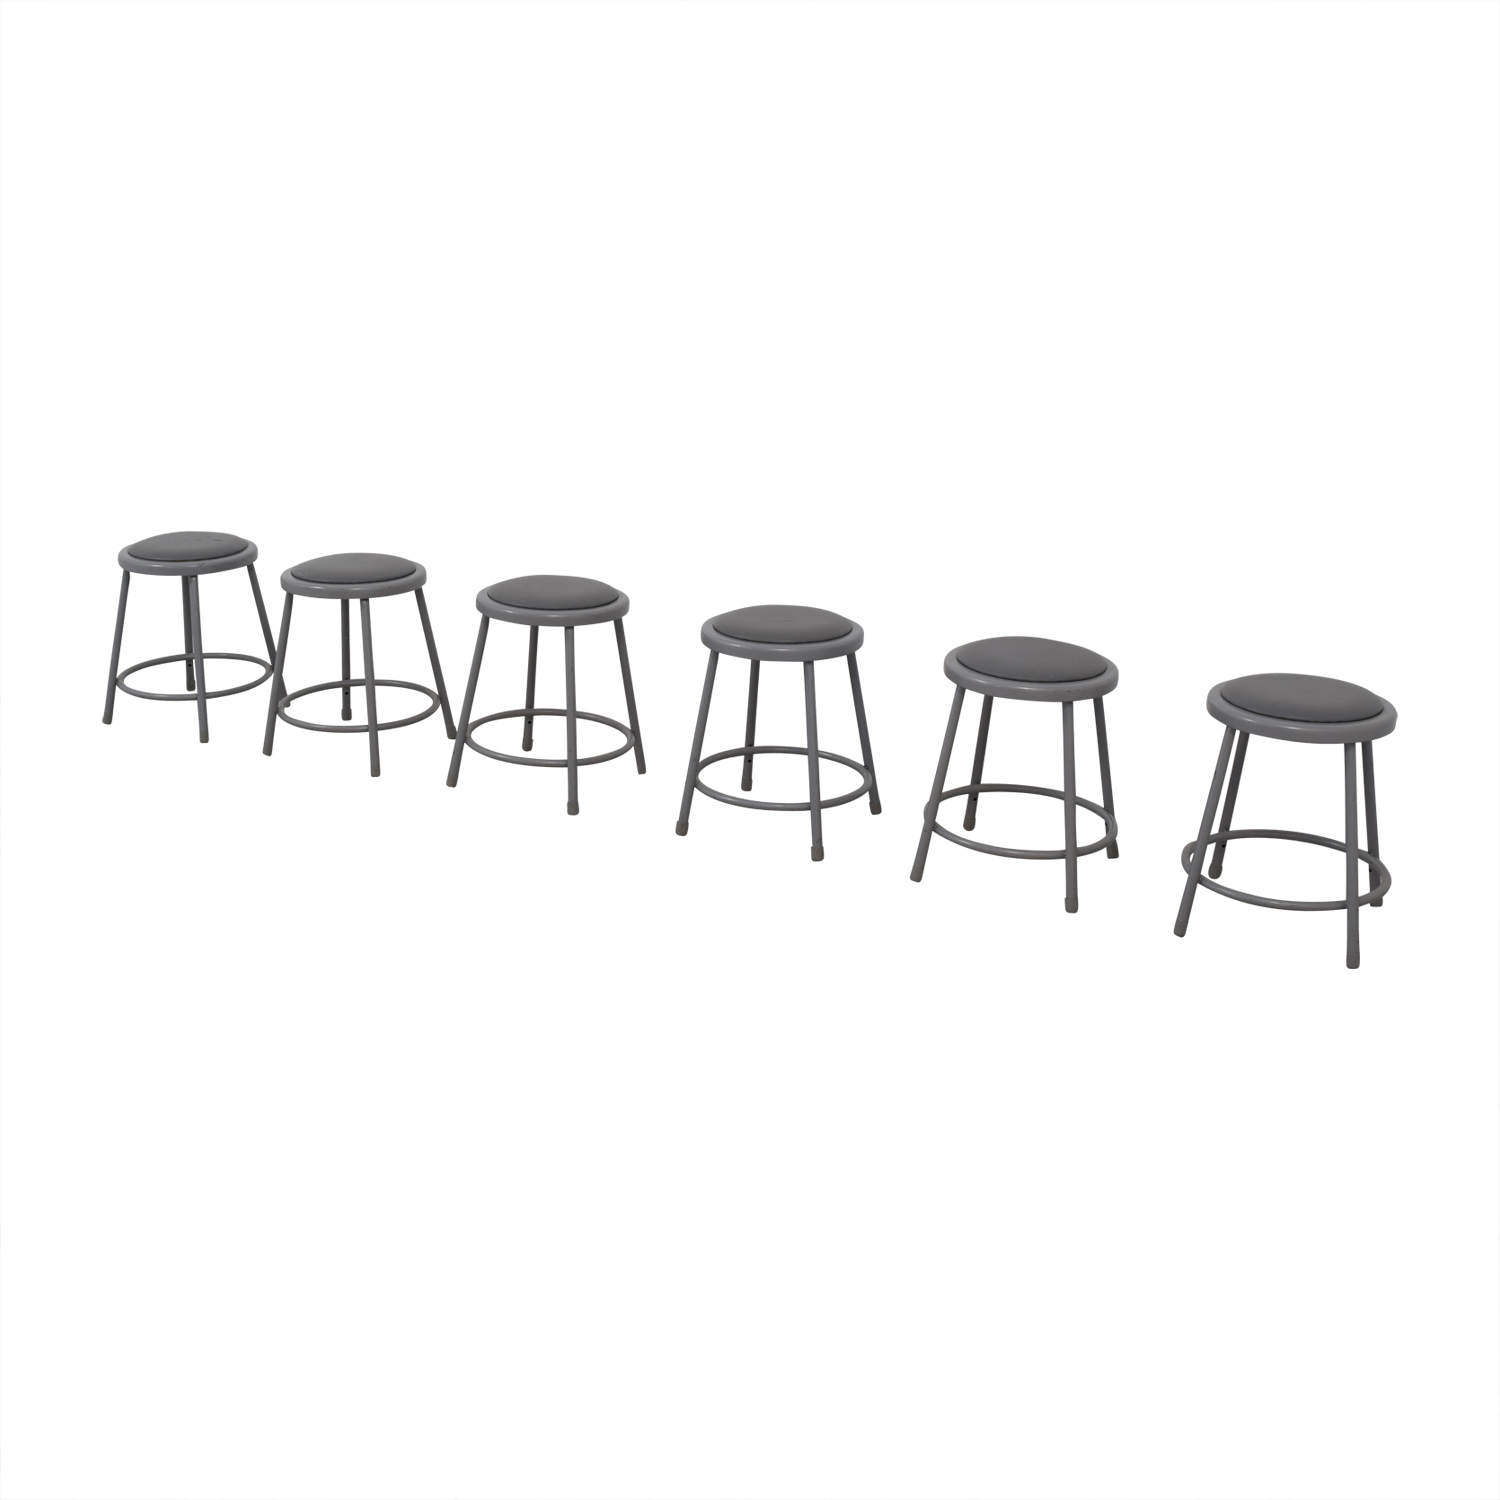 National Public Seating National Public Seating Metal Shop Stools discount